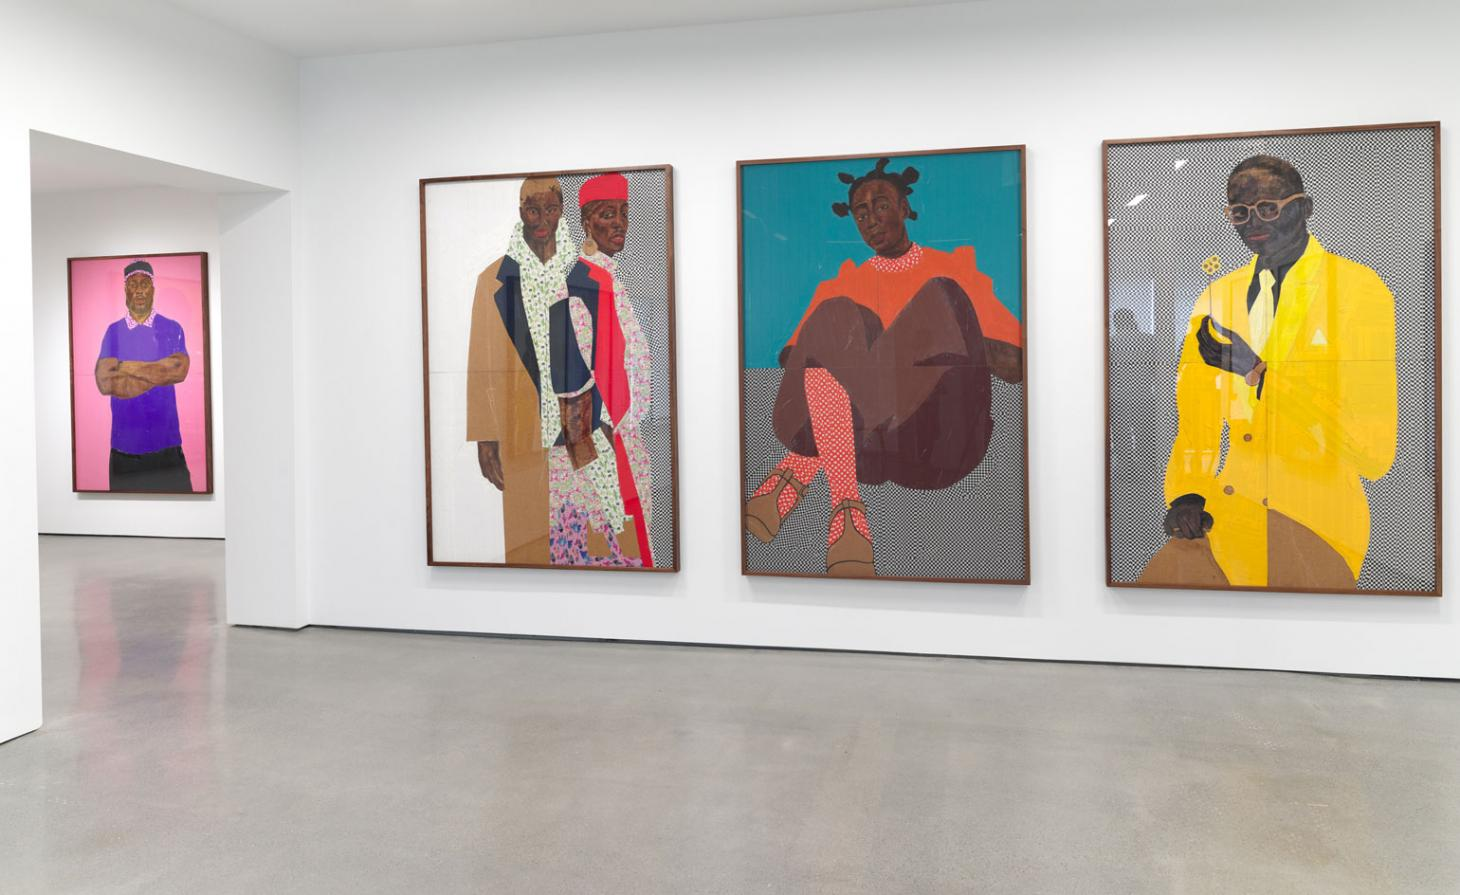 Installation view of Serge Attukwei Clottey's 'Beyond Skin' at Simchowitz Gallery, Los Angeles